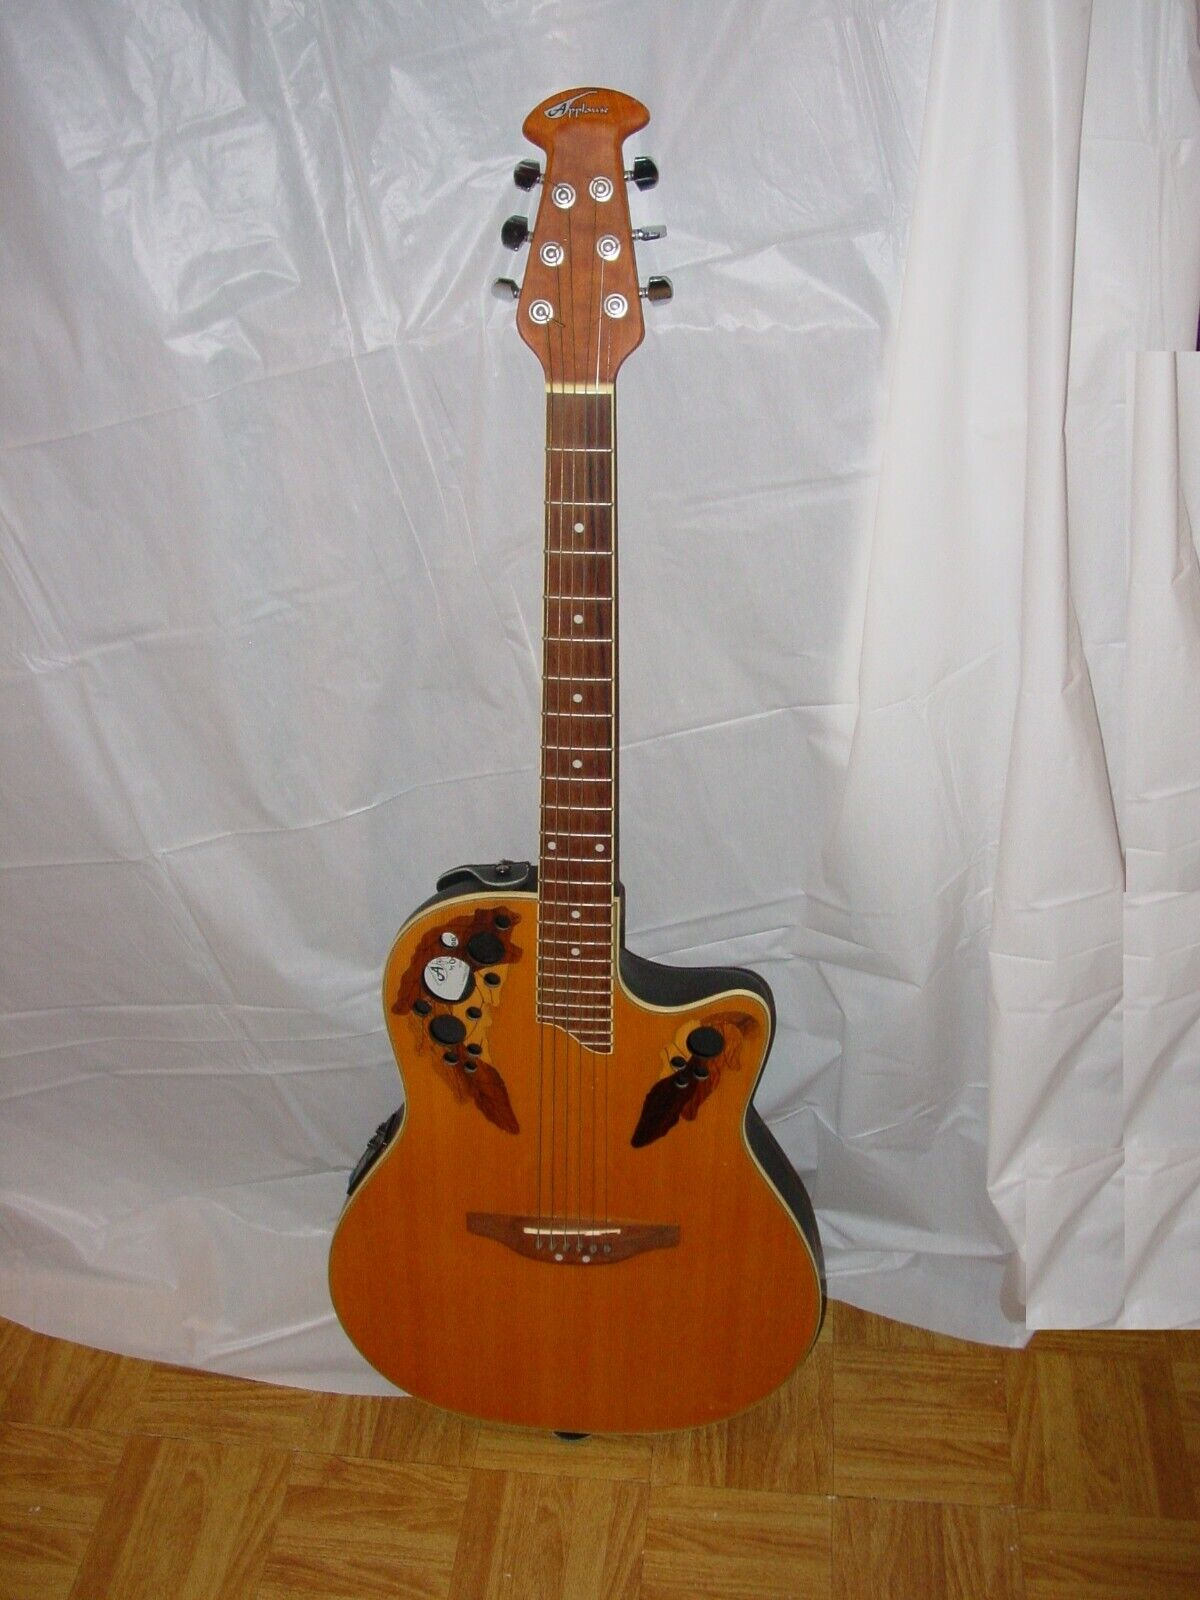 Applause Ovation Acoustic  Electric Guitar AE-48 Elite Kaman w Strap